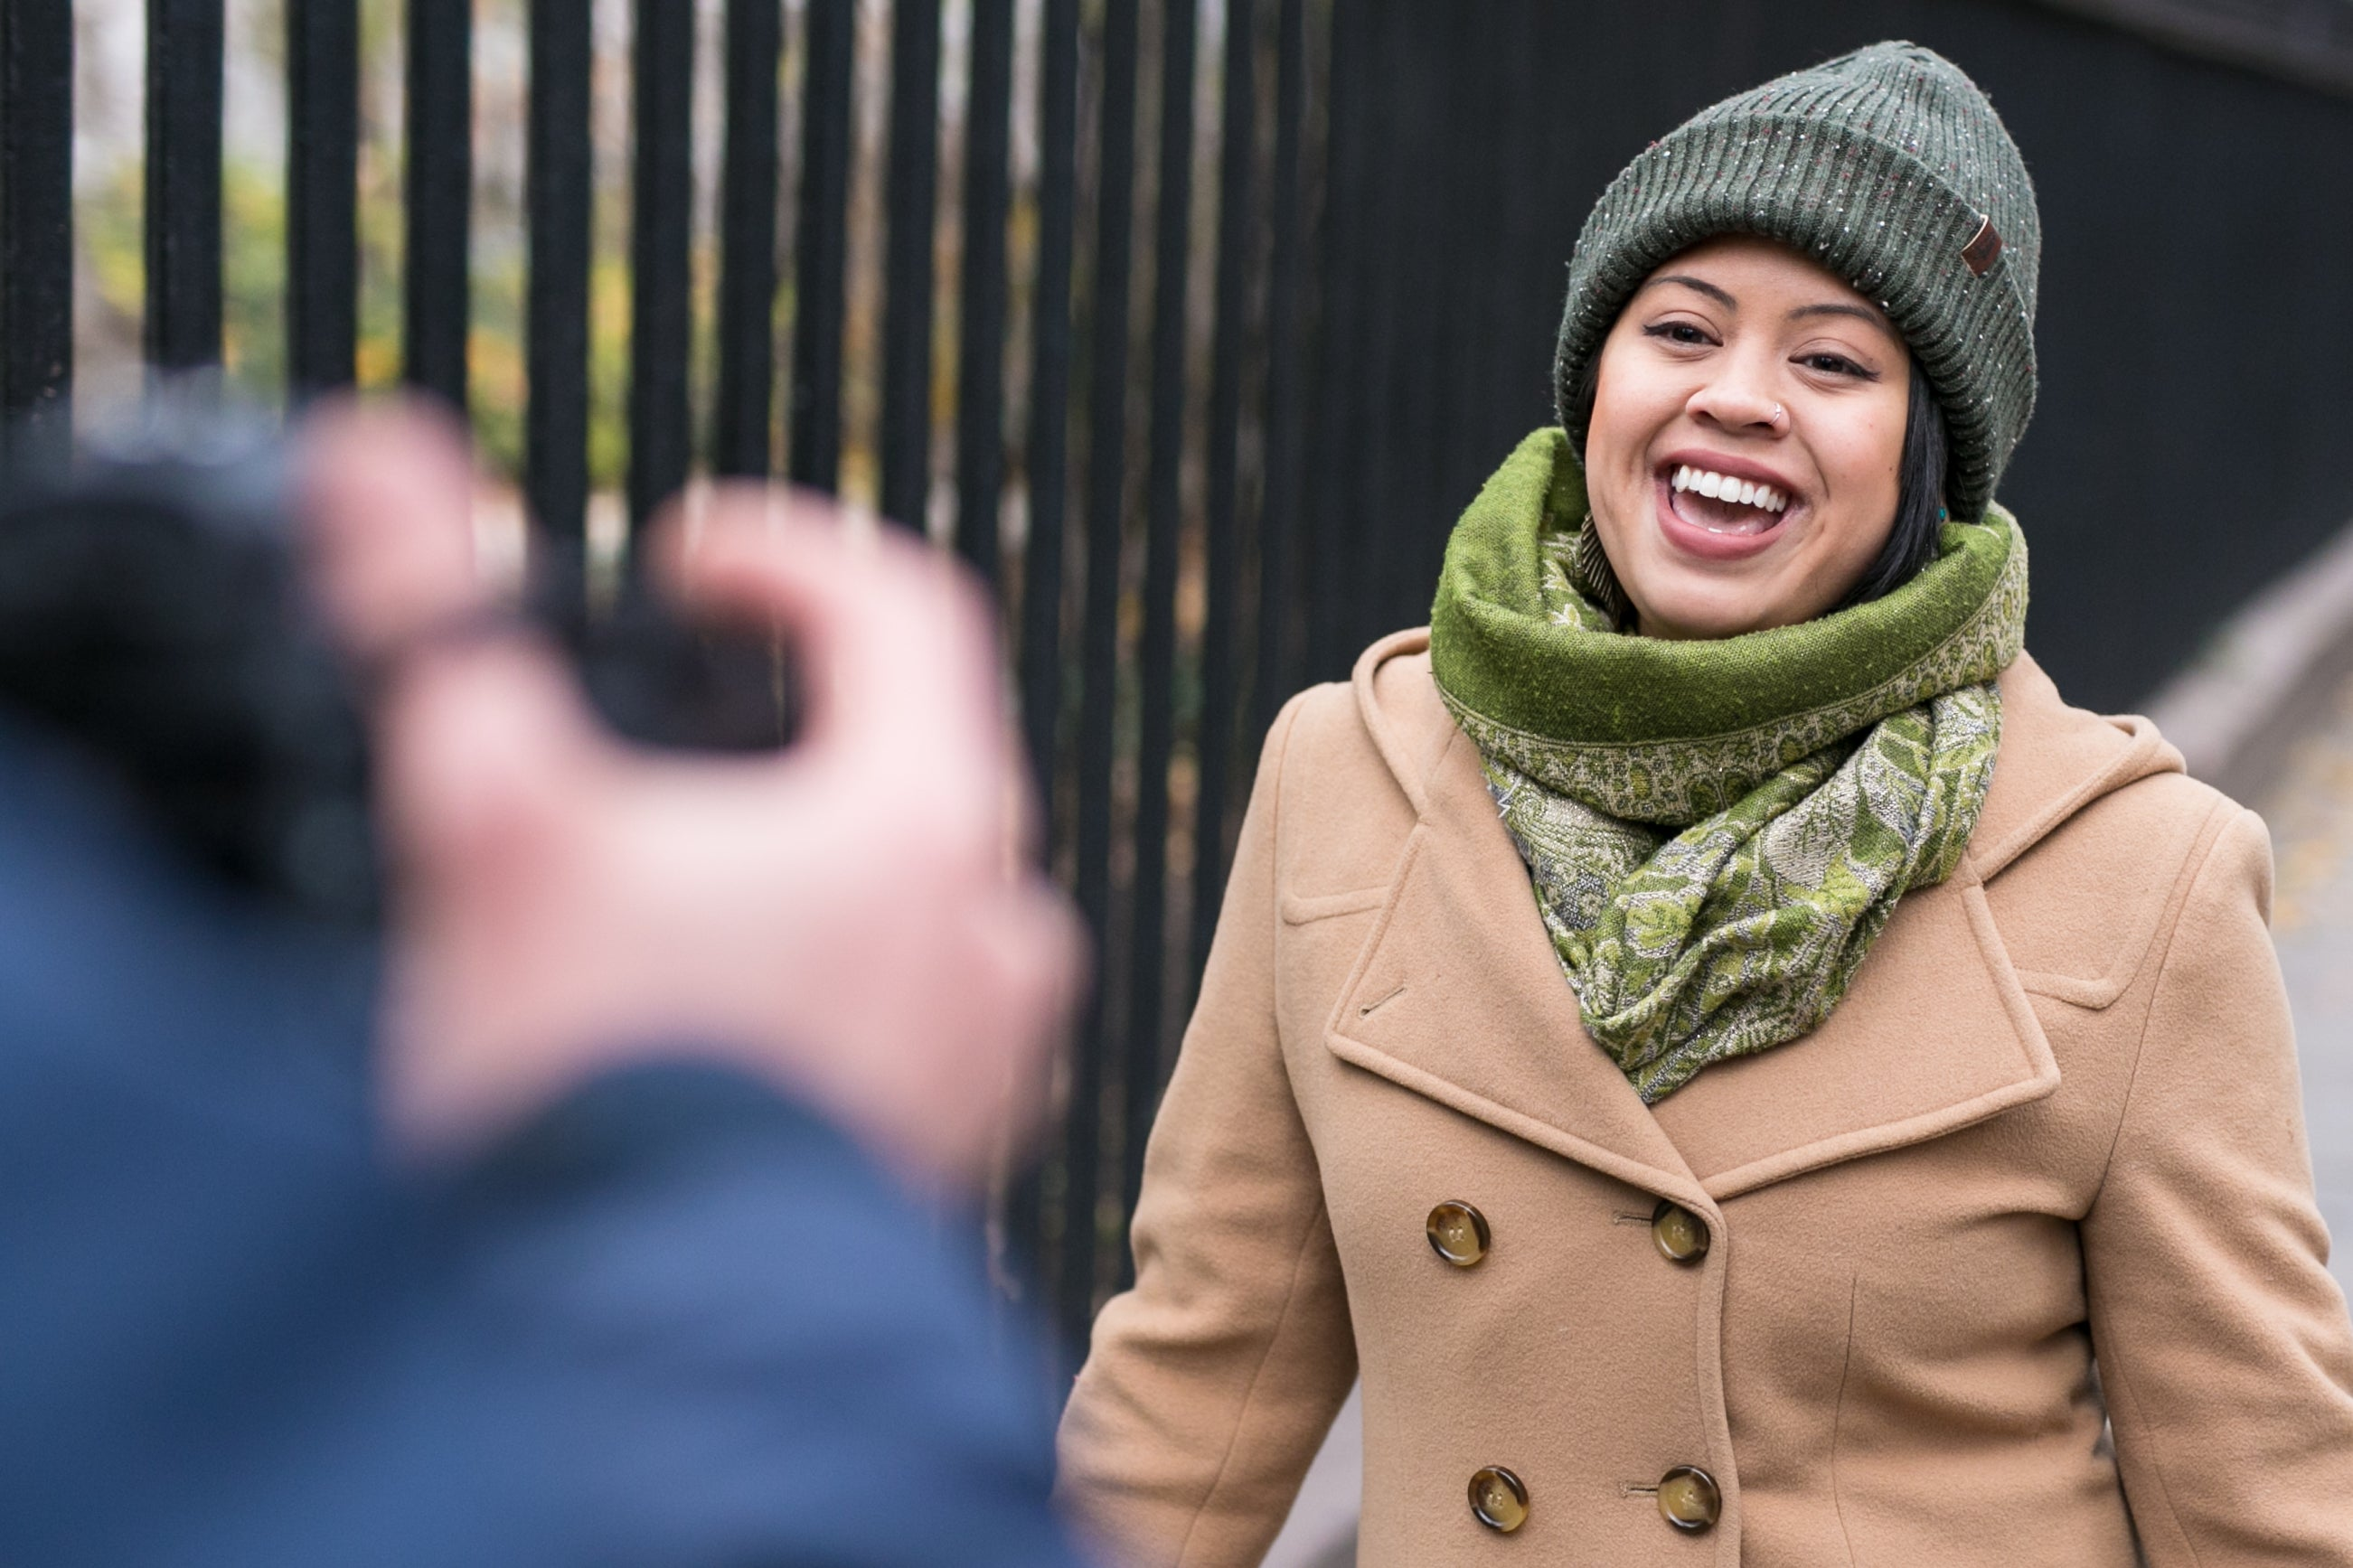 Kristian wrapped in a green scarf and beanie and tan coat singing joyfully at a camera in the streets.